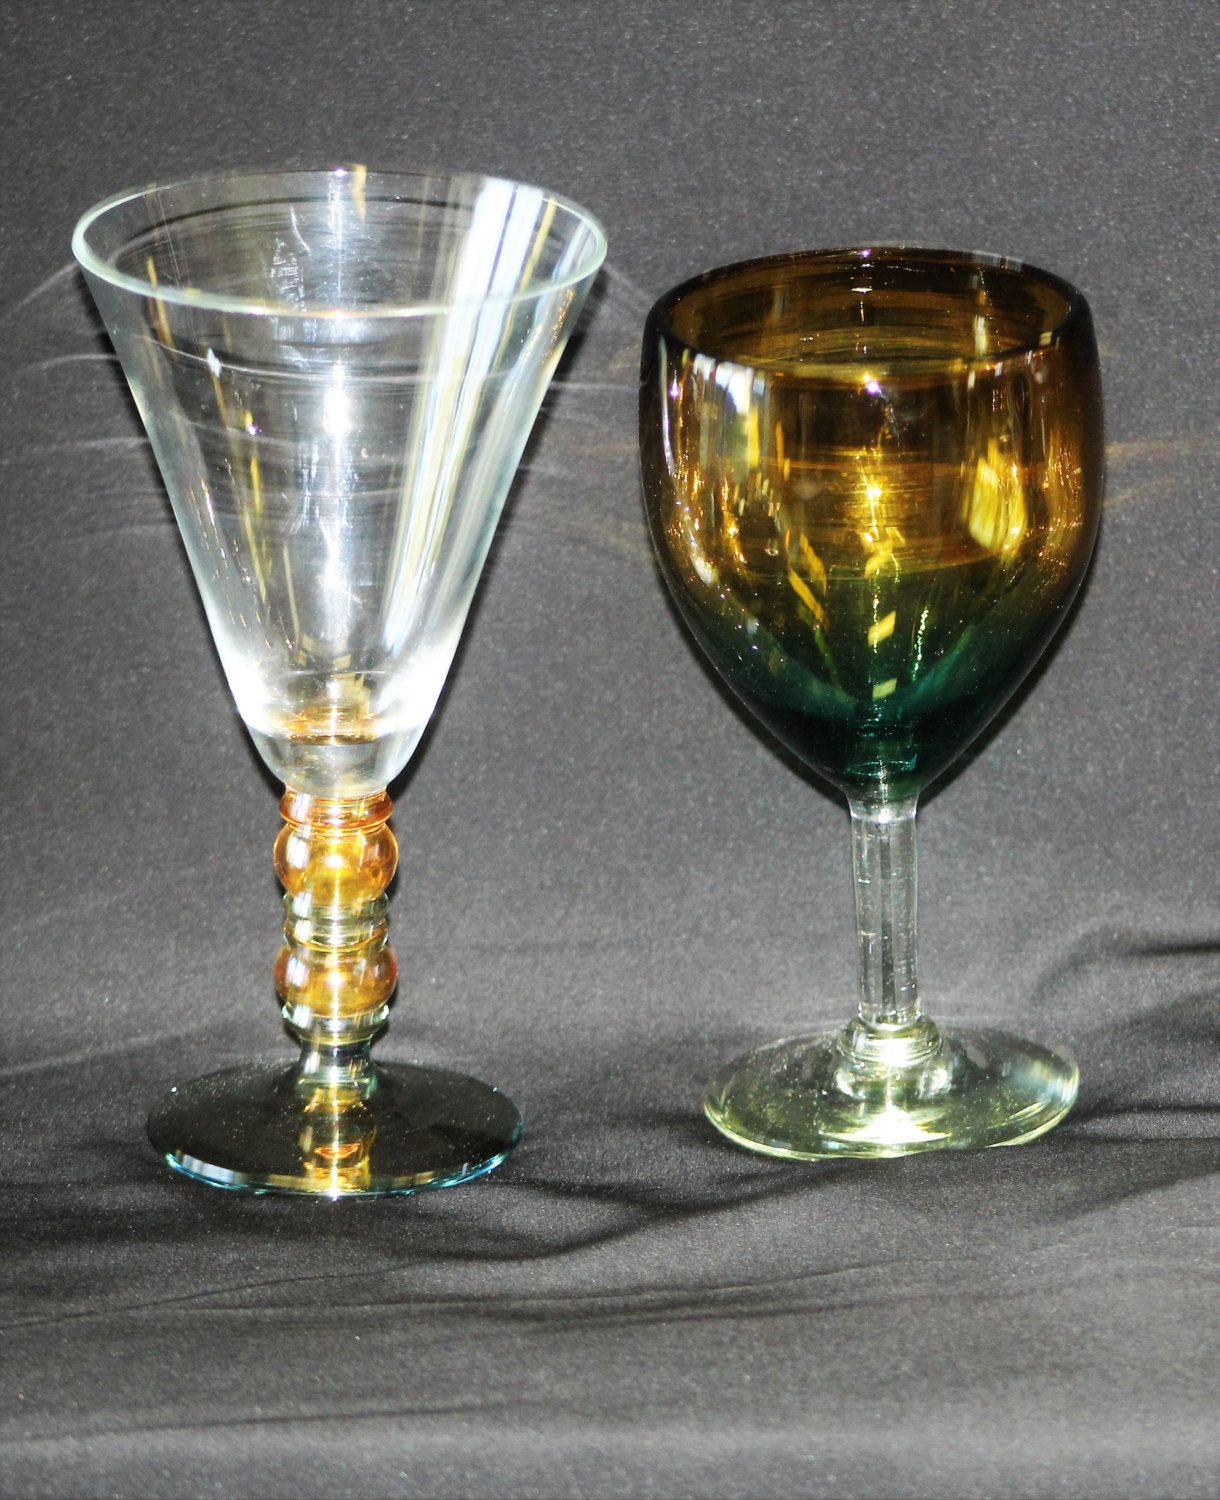 2 Vintage Hand Blown Art Glass Iridescent Wine Goblets, Beautiful Colors, Unique  Barware, Dining Accents, Cocktail Glasses